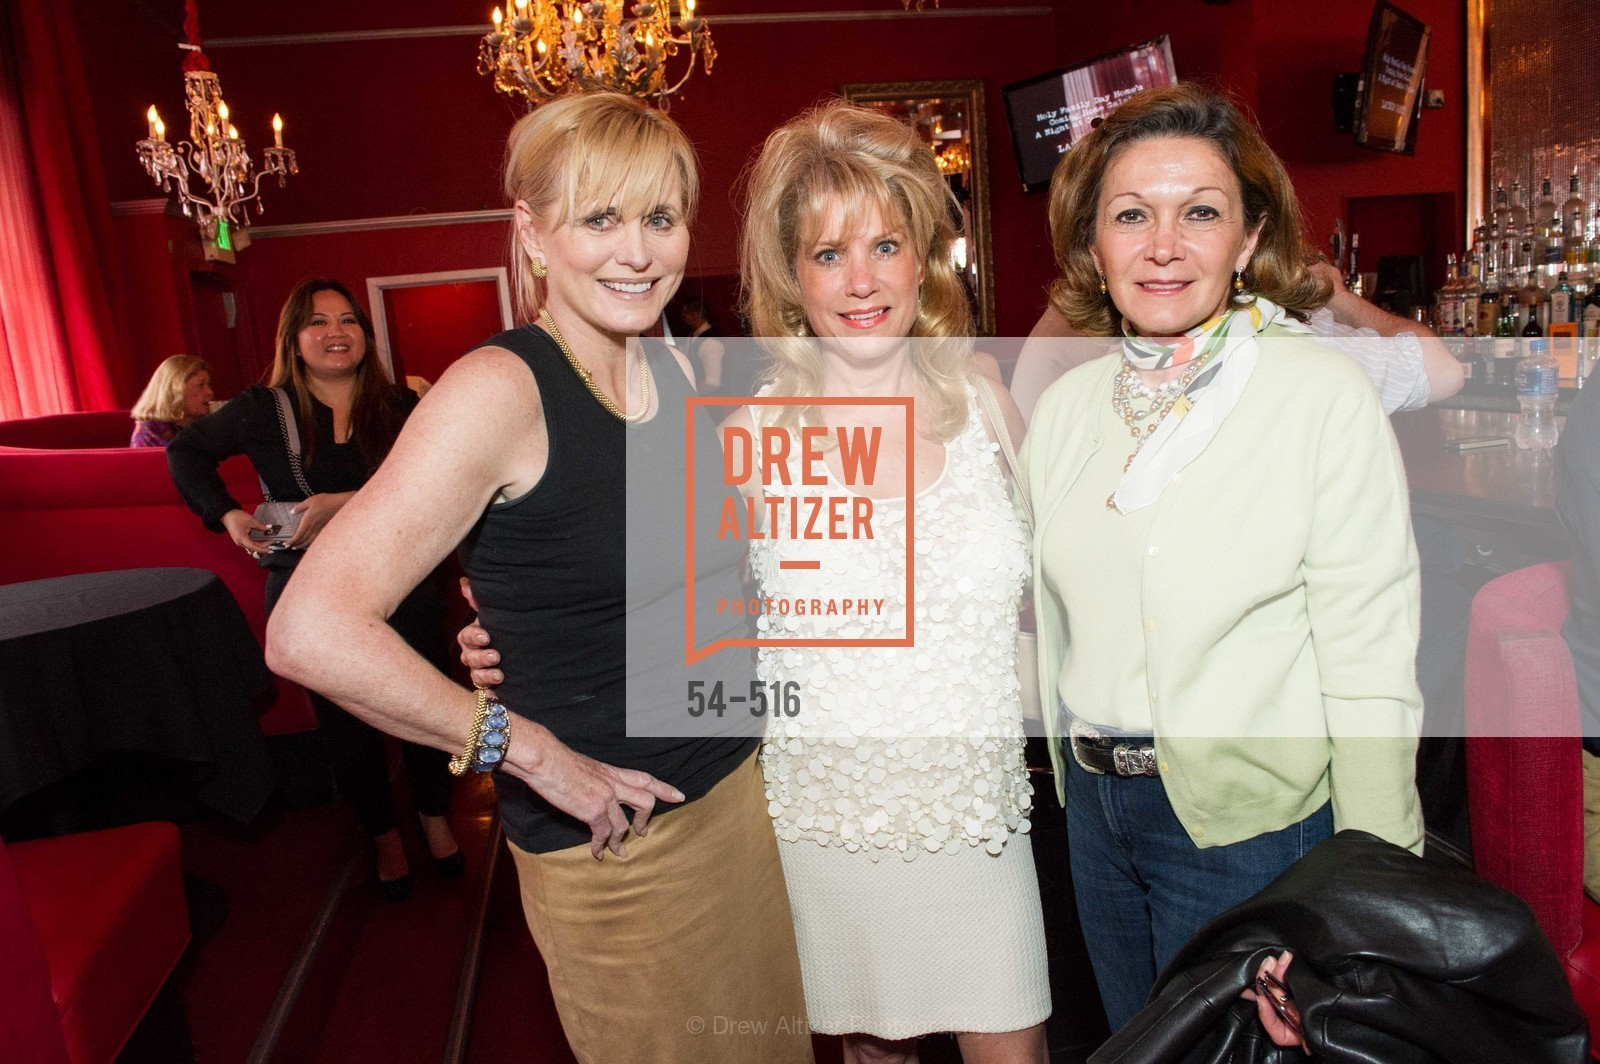 Mary Toboni, Cece McGraw, Gabriela Papale, HOLY FAMILY DAY HOME Coming Home Gala Launch Party, US. US, April 10th, 2014,Drew Altizer, Drew Altizer Photography, full-service agency, private events, San Francisco photographer, photographer california